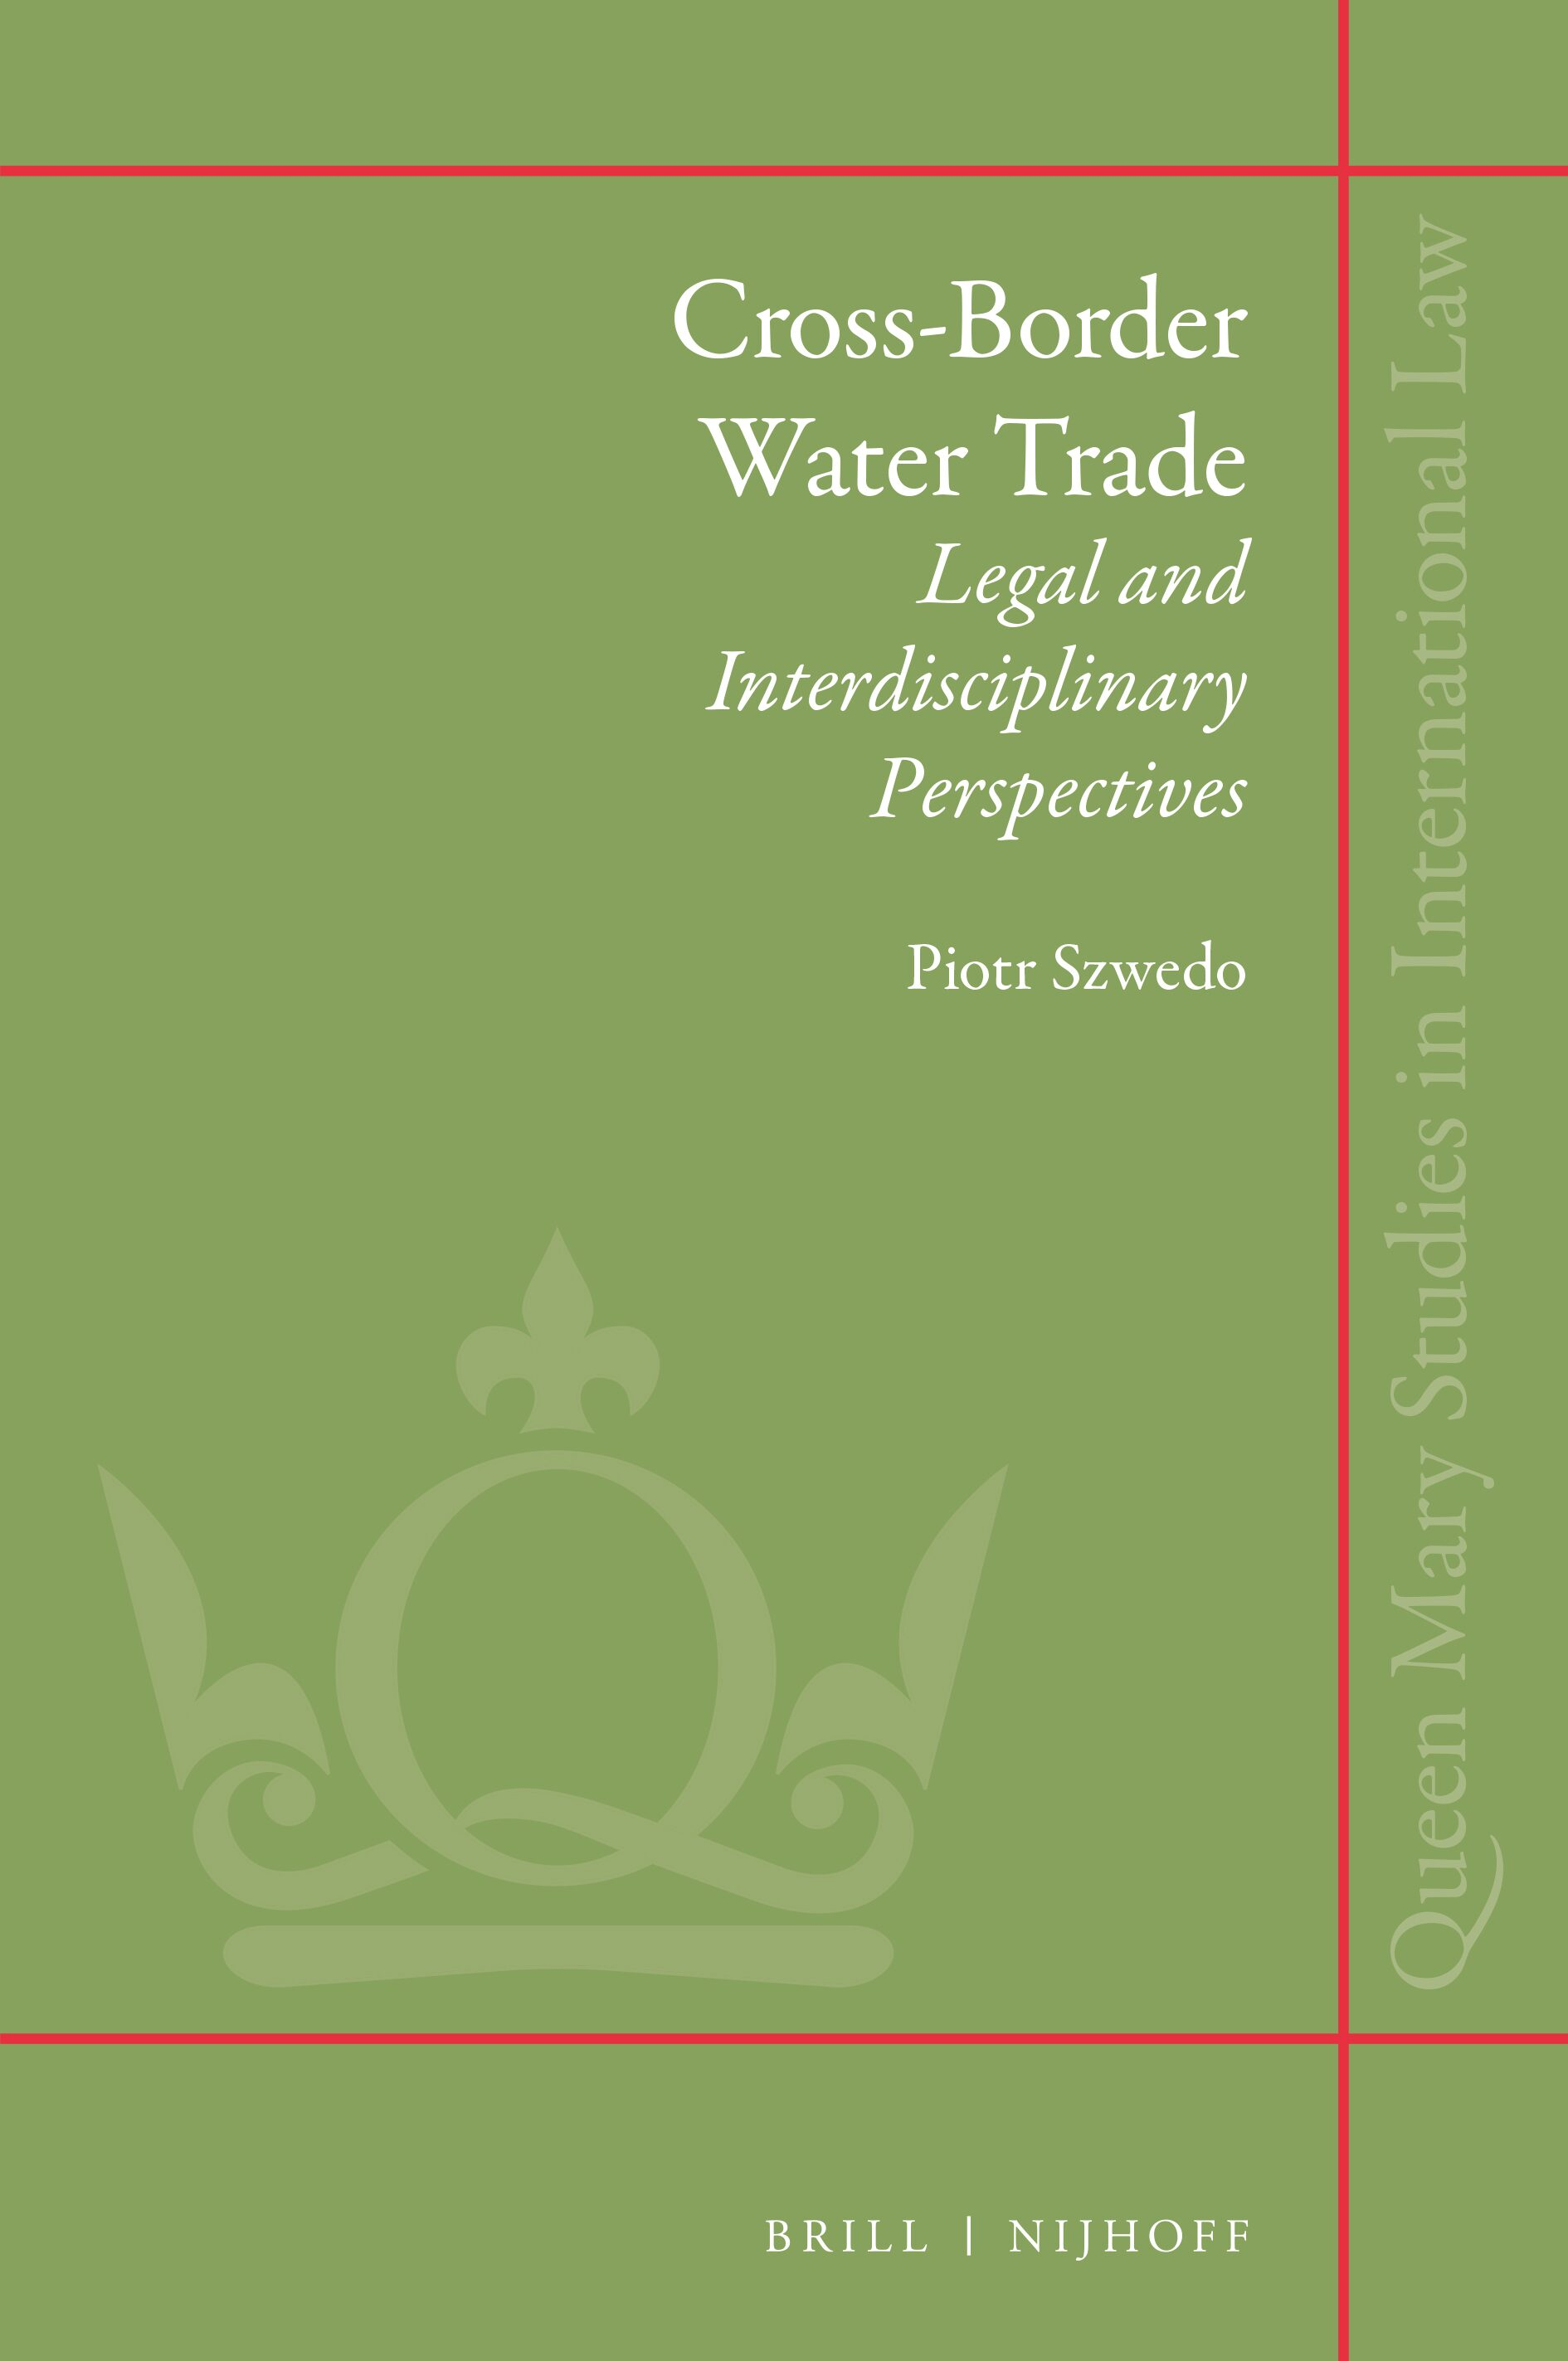 Water as an Article of Trade in Wto Law in: Cross-border ...